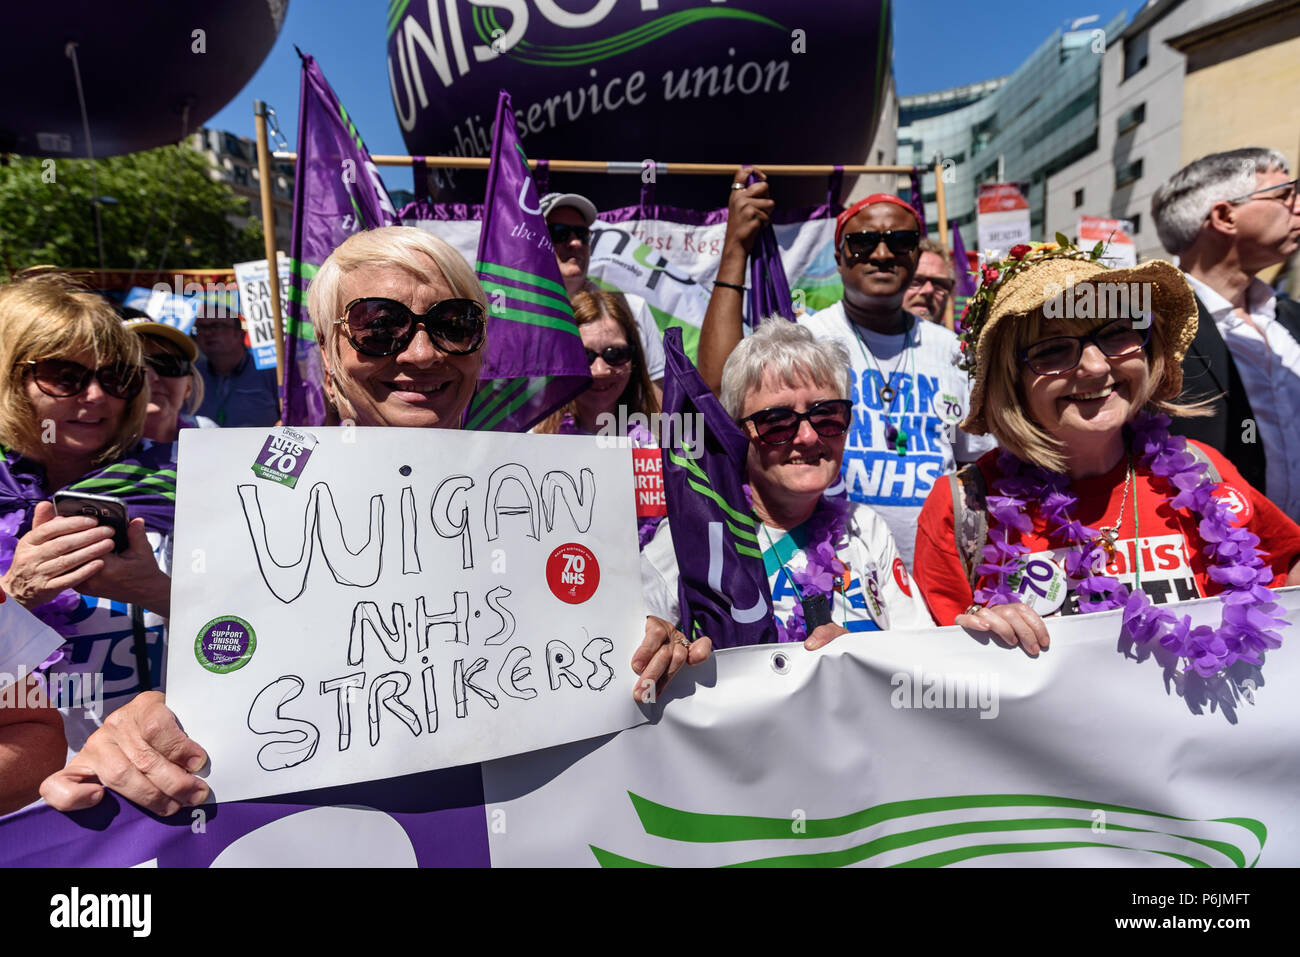 June 30, 2018 - London, UK. 30th June 2018. Wigan NHS strikers were near the front of the march as thousands marched through London from the BBC to a rally near Downing St to celebrate 70 years of the NHS, and to support its dedicated workers in demanding a publicly owned NHS that is free for all with proper funding and proper staffing and providing a world class services for every community. The protest, organised by the the People's Assembly, Health Campaigns Together, Trades Union Congress, Unison, Unite, GMB, British Medical Association, Royal College of Nursing, Royal College of Midwive - Stock Image